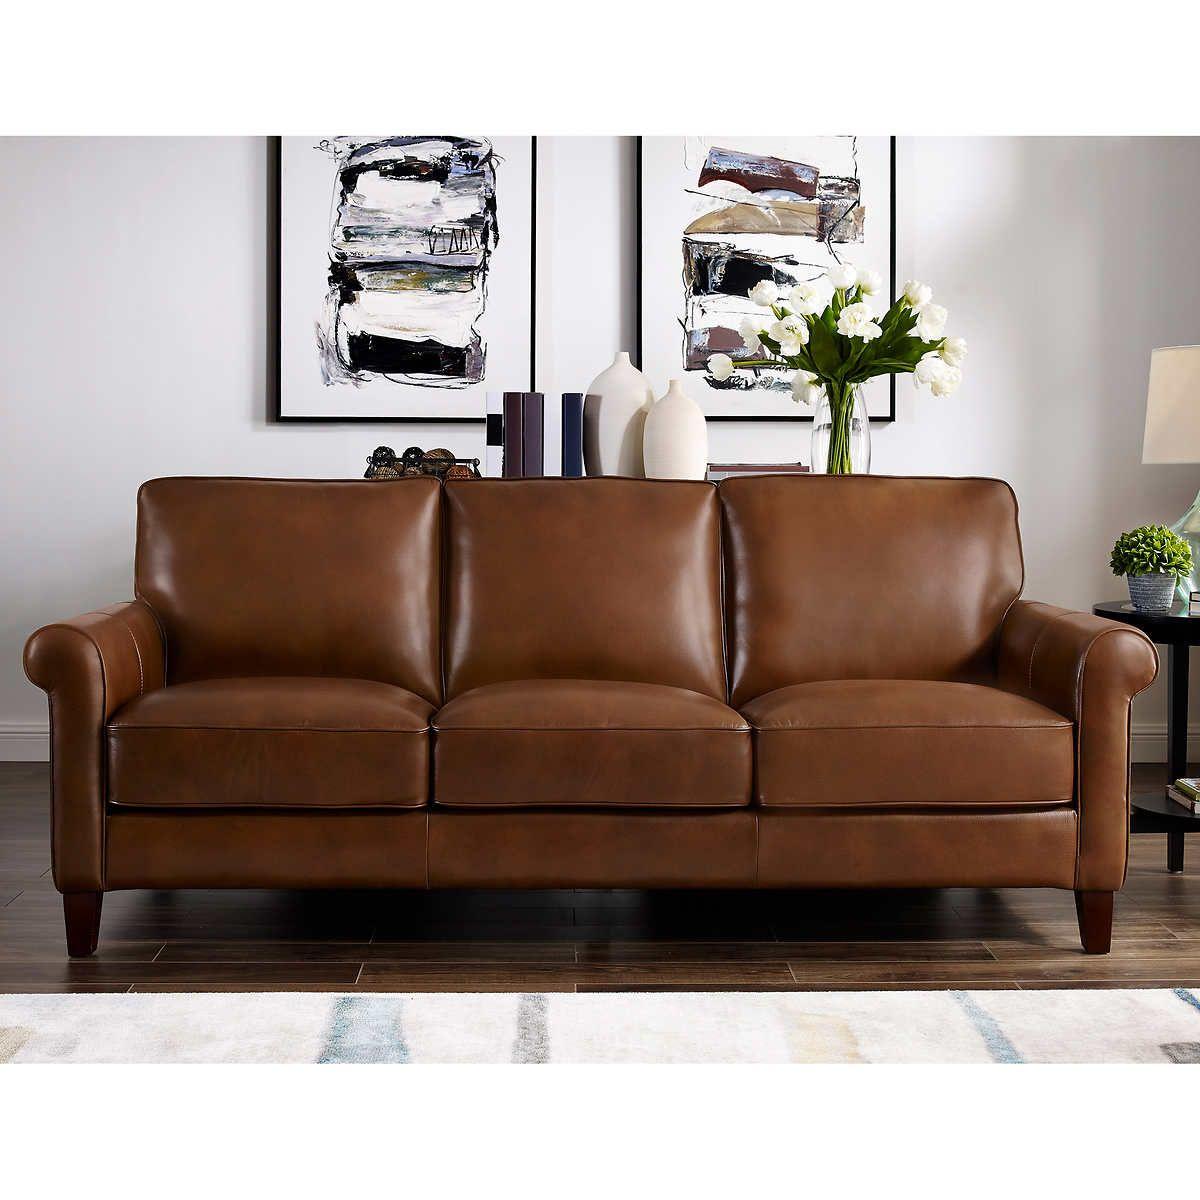 Pin By Rj Valles On Pueblo Home Top Grain Leather Sofa Leather